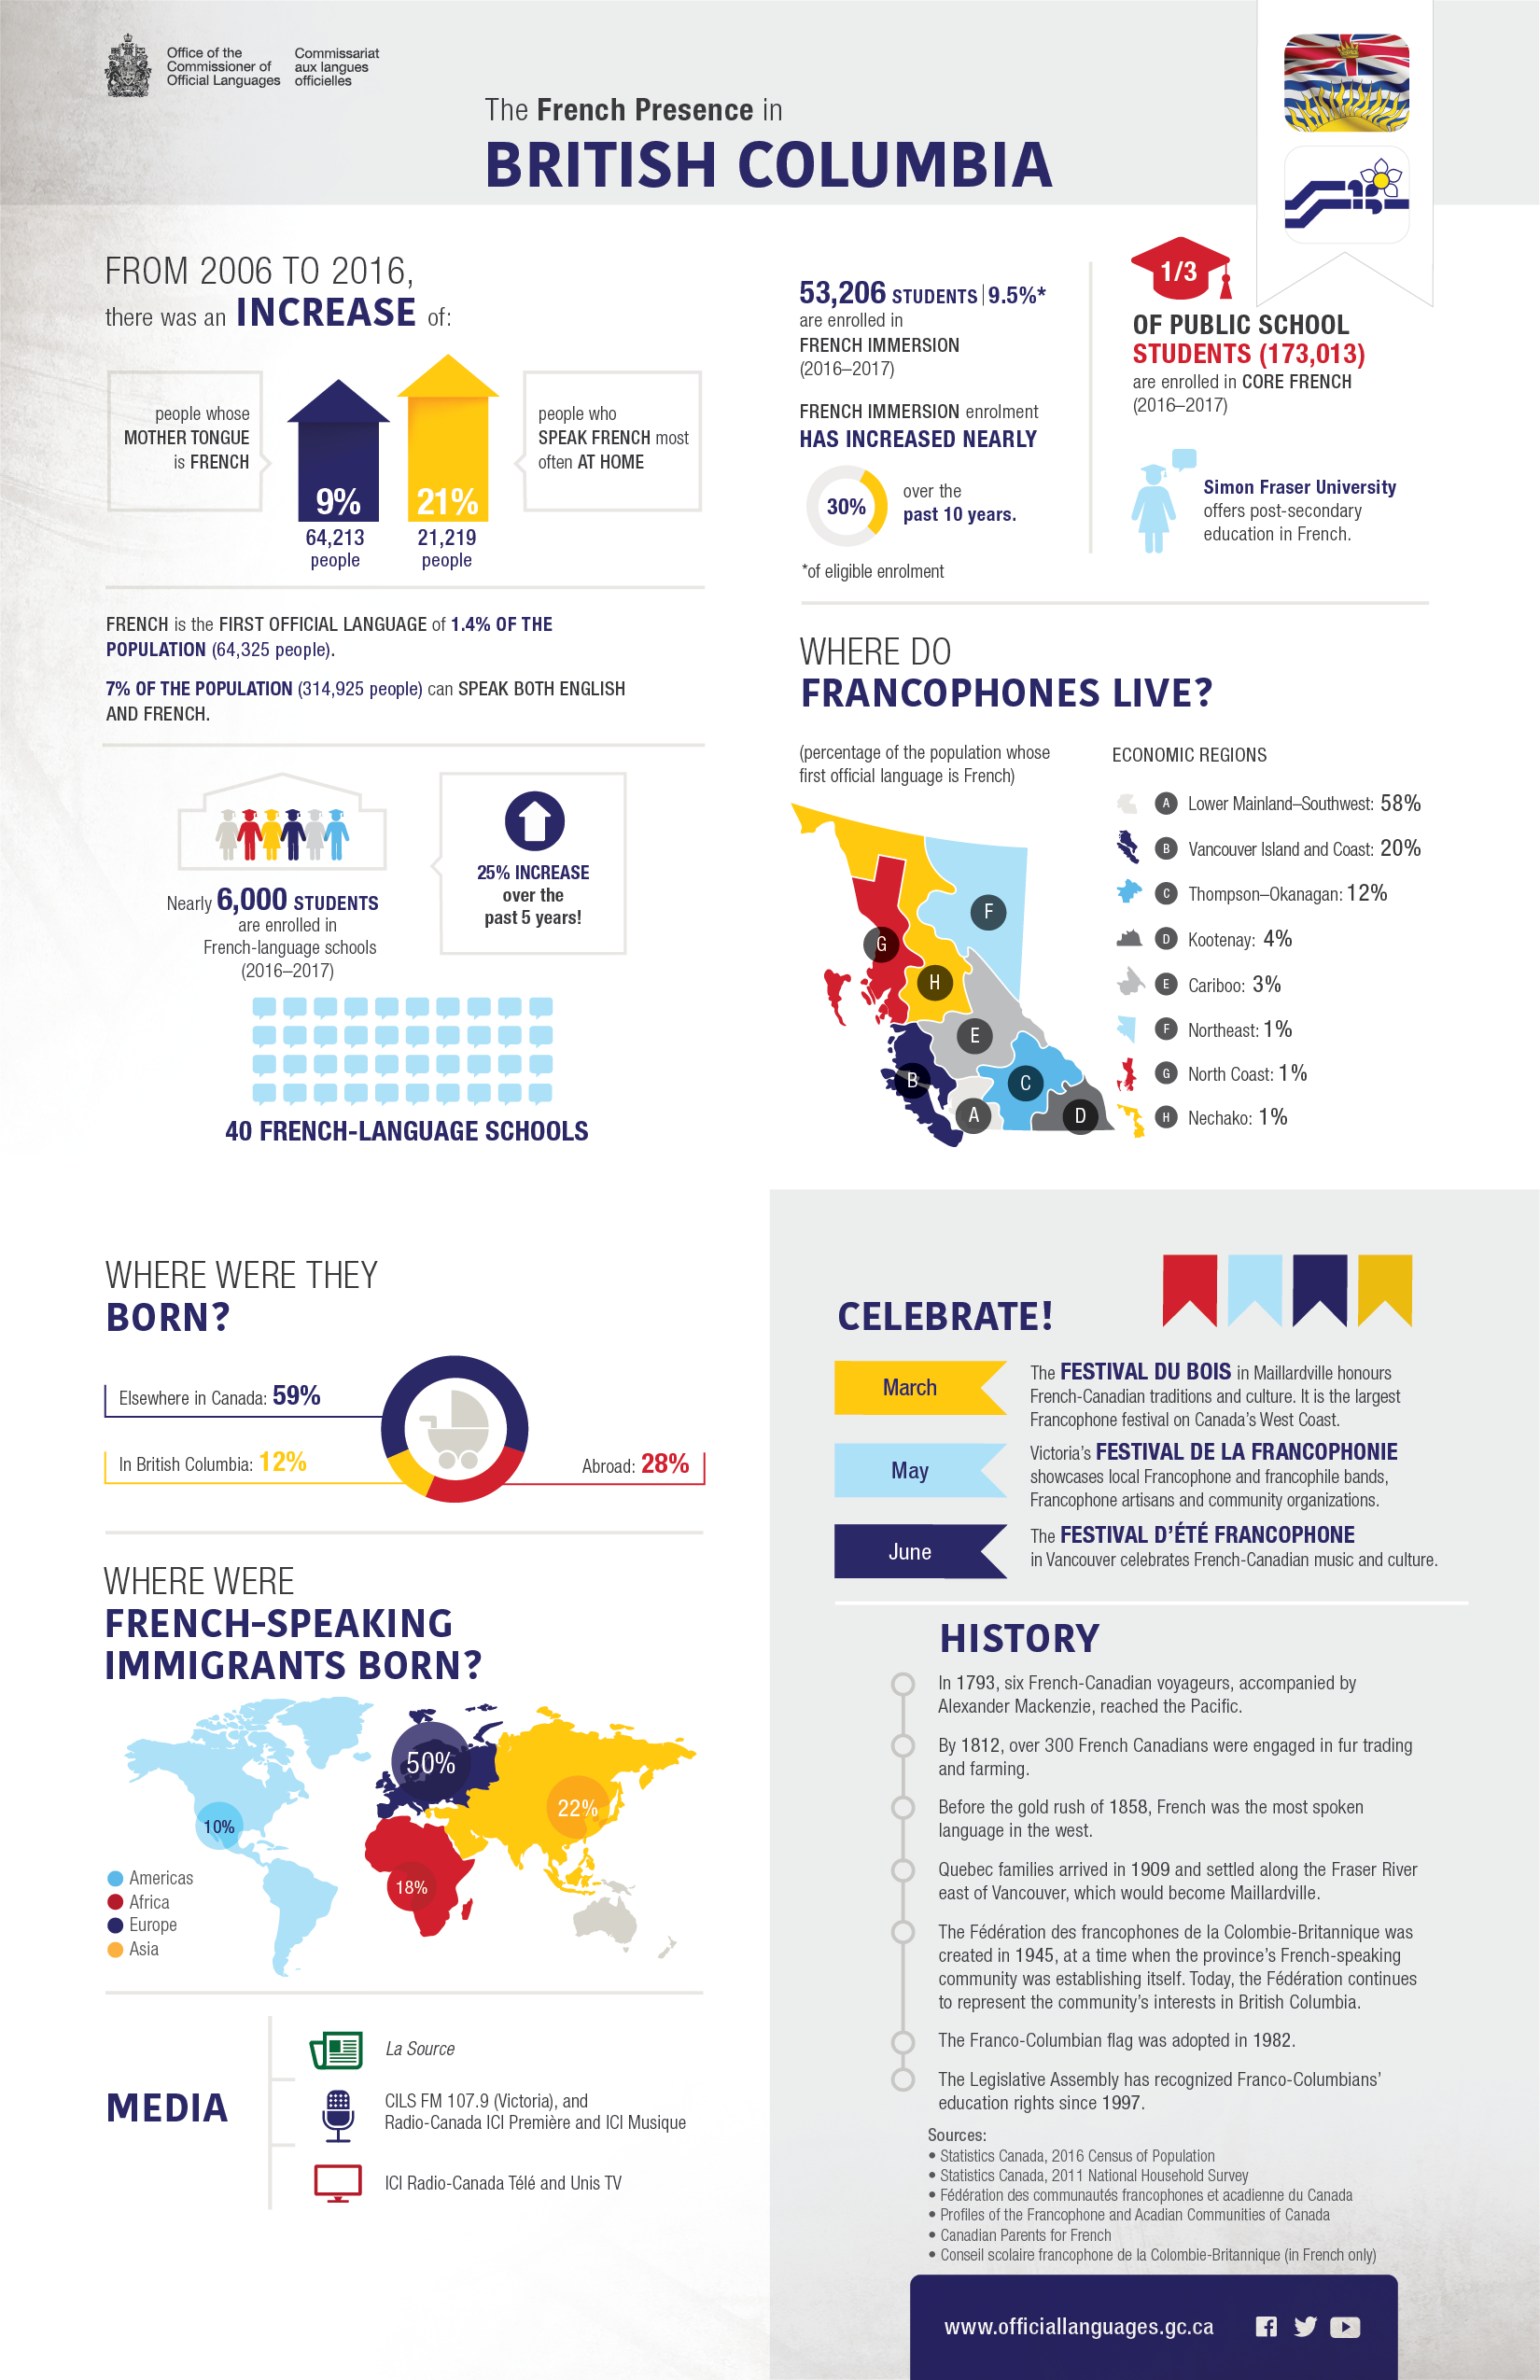 The French presence in British Columbia. Details in text following the infographic.